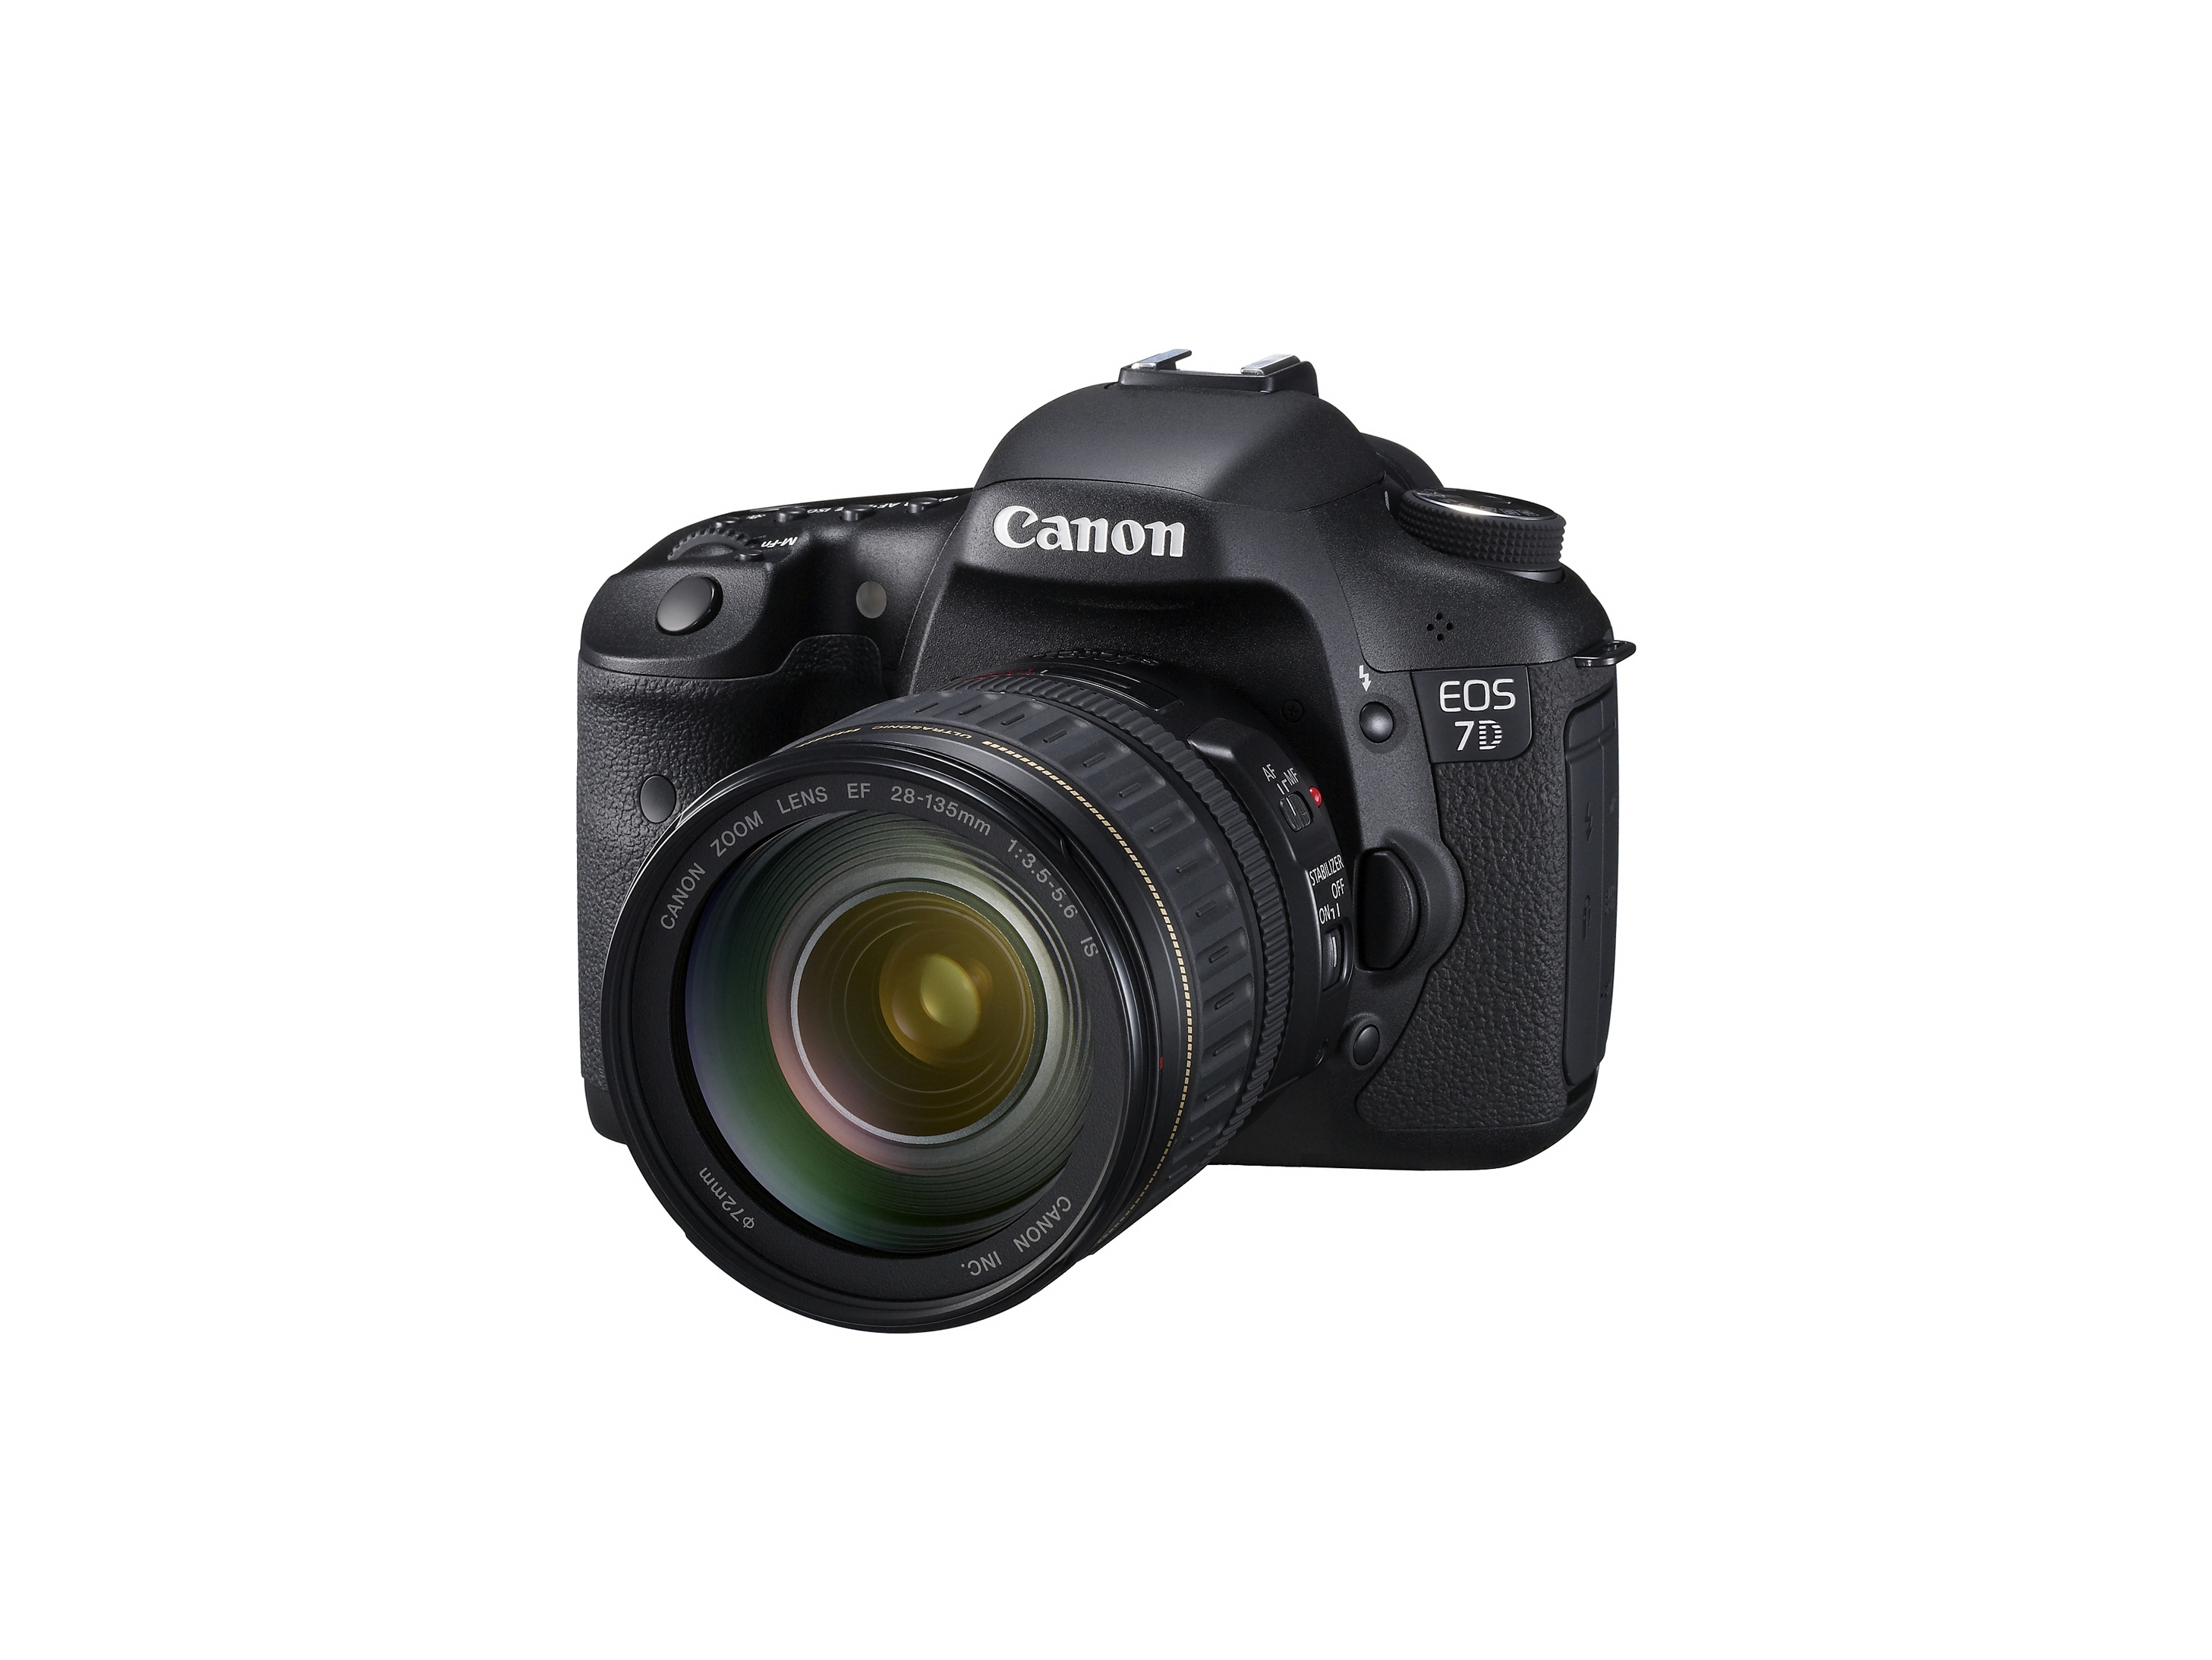 Canon U.S.A., Inc. is announcing the new EOS 7D Digital SLR Camera featuring